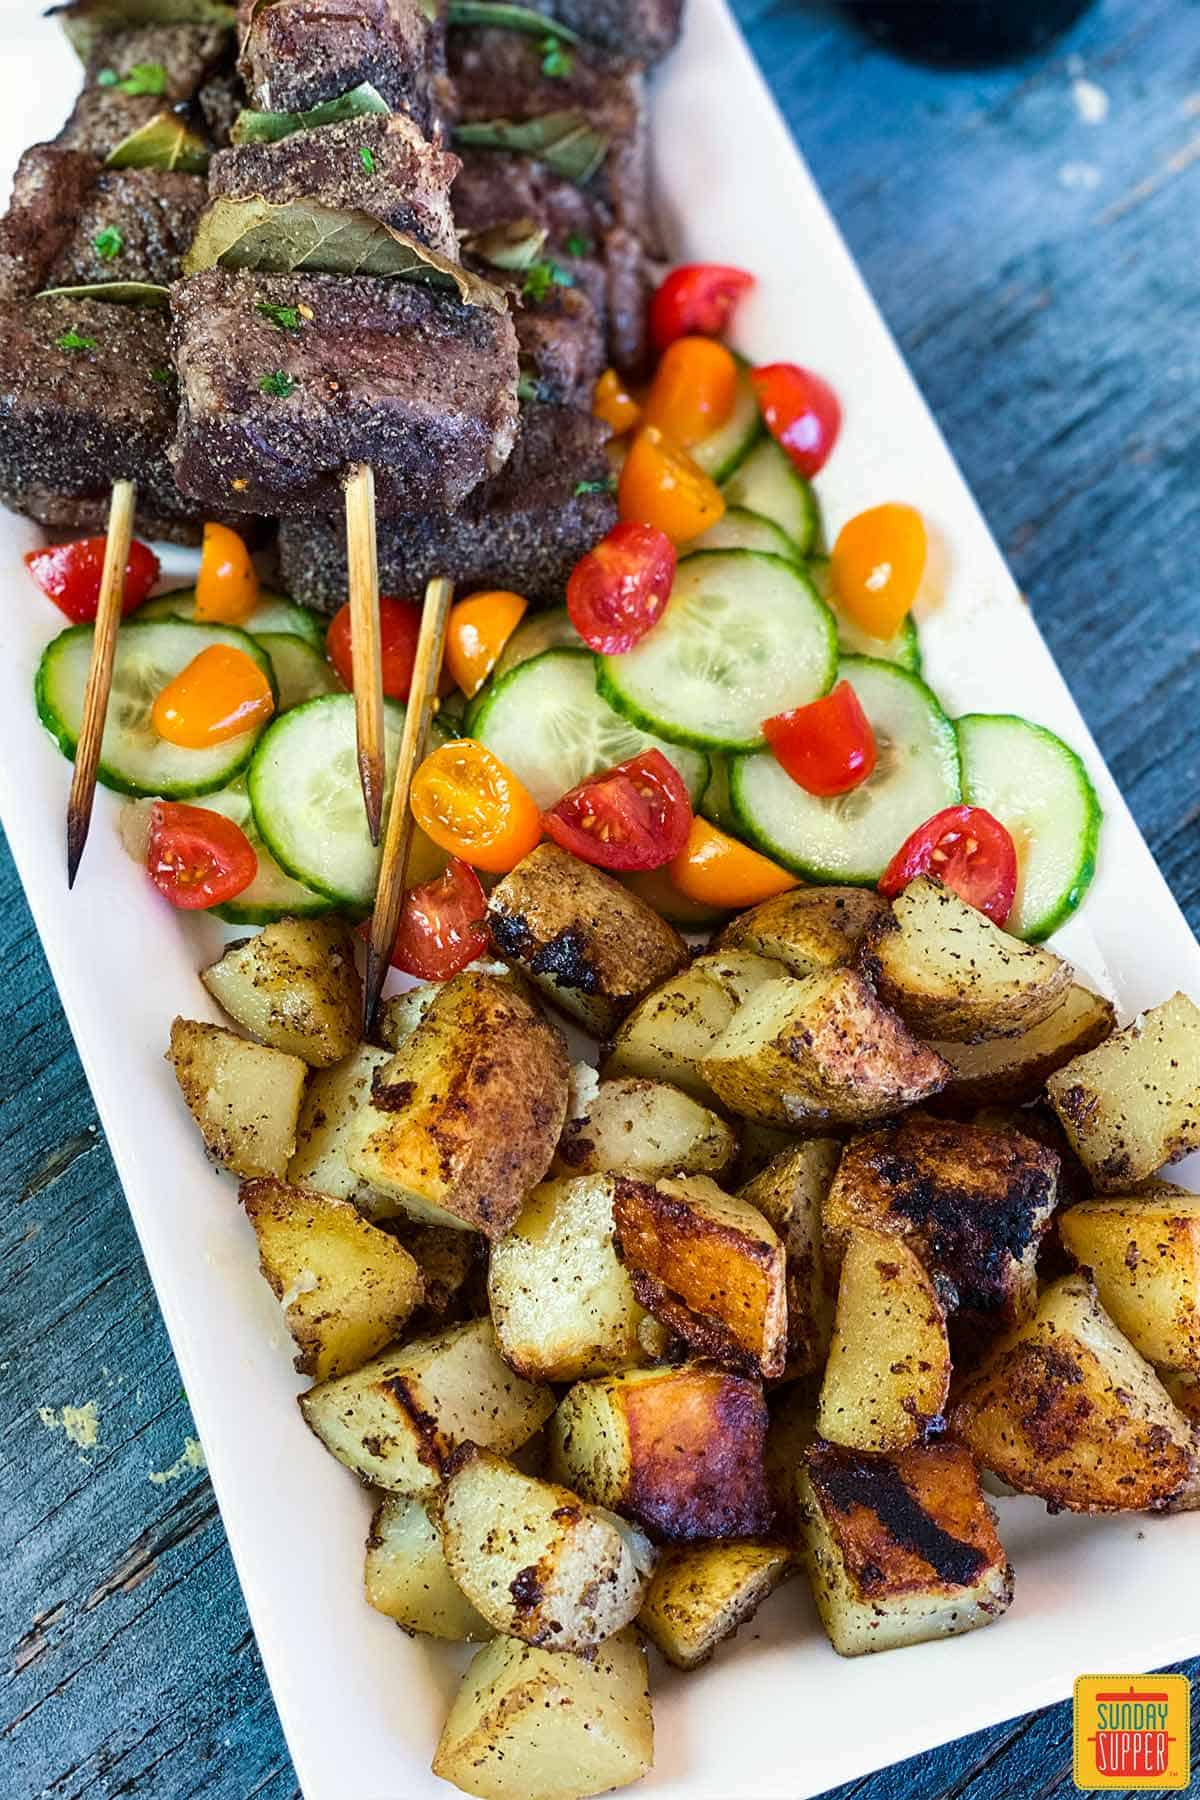 Grilled potatoes on a white platter with tomato cucumber salad and Portuguese Beef Skewers